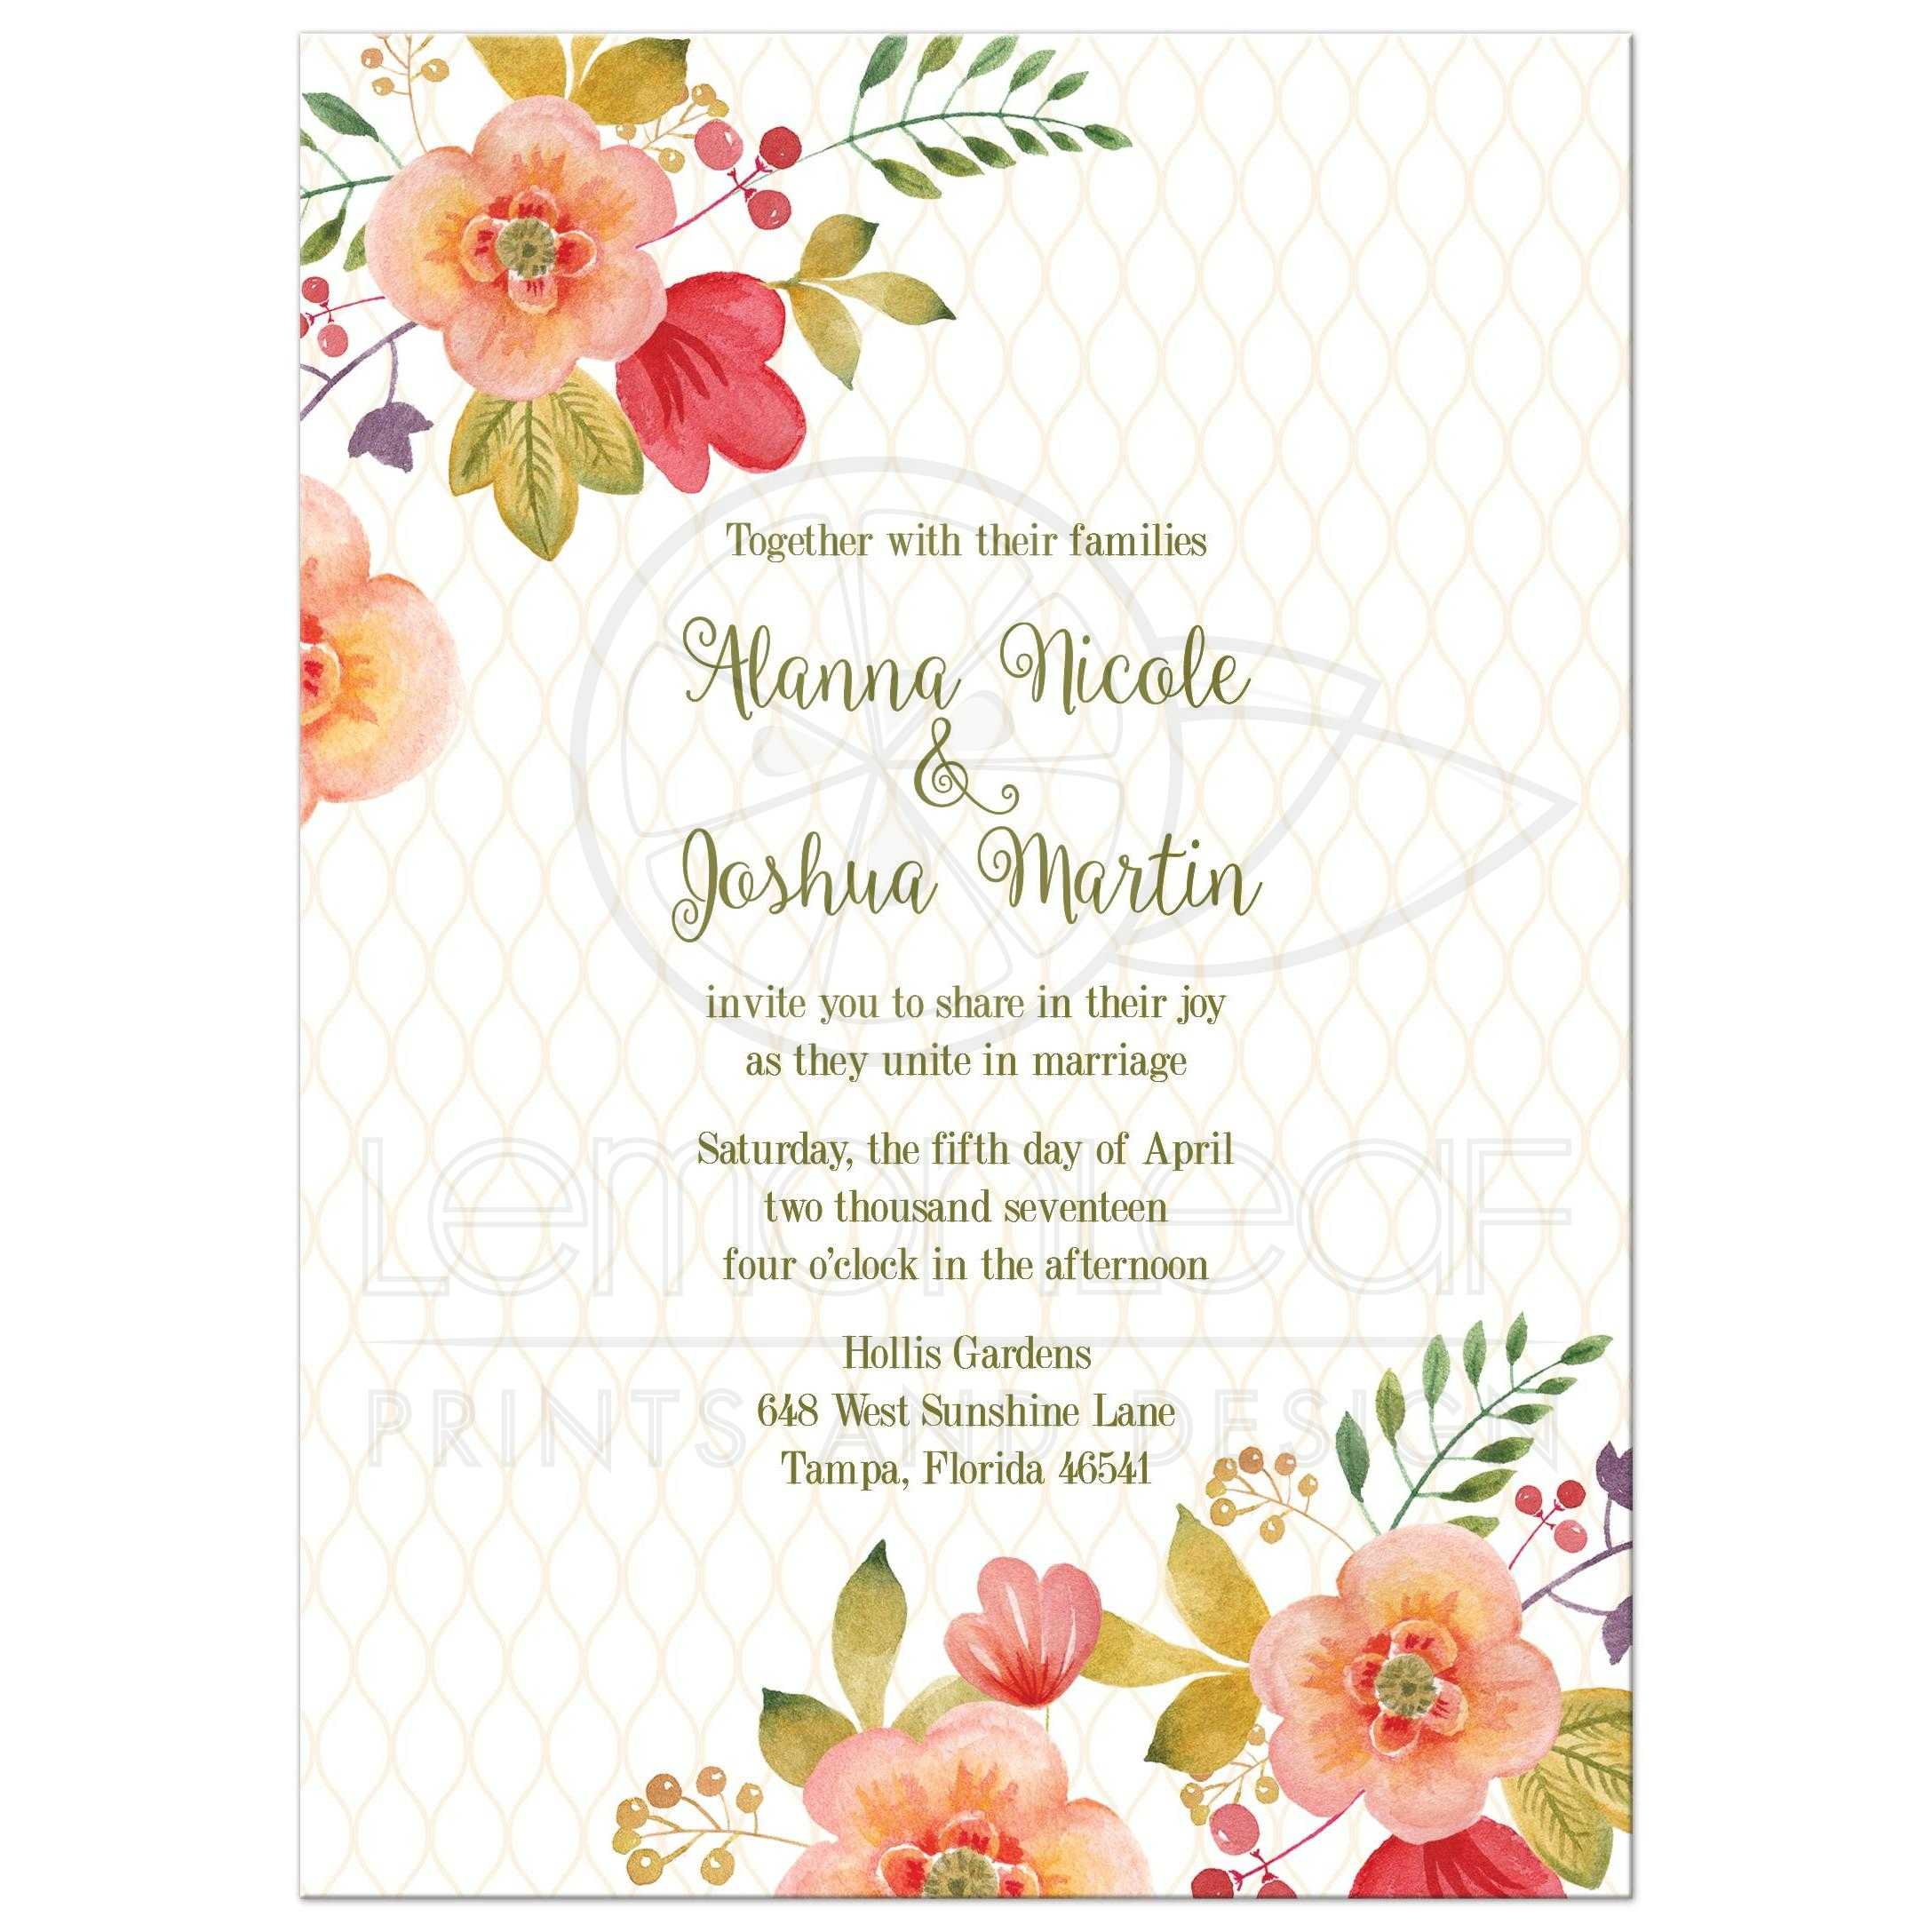 Floral Wedding Invitation Olive Green And Pink